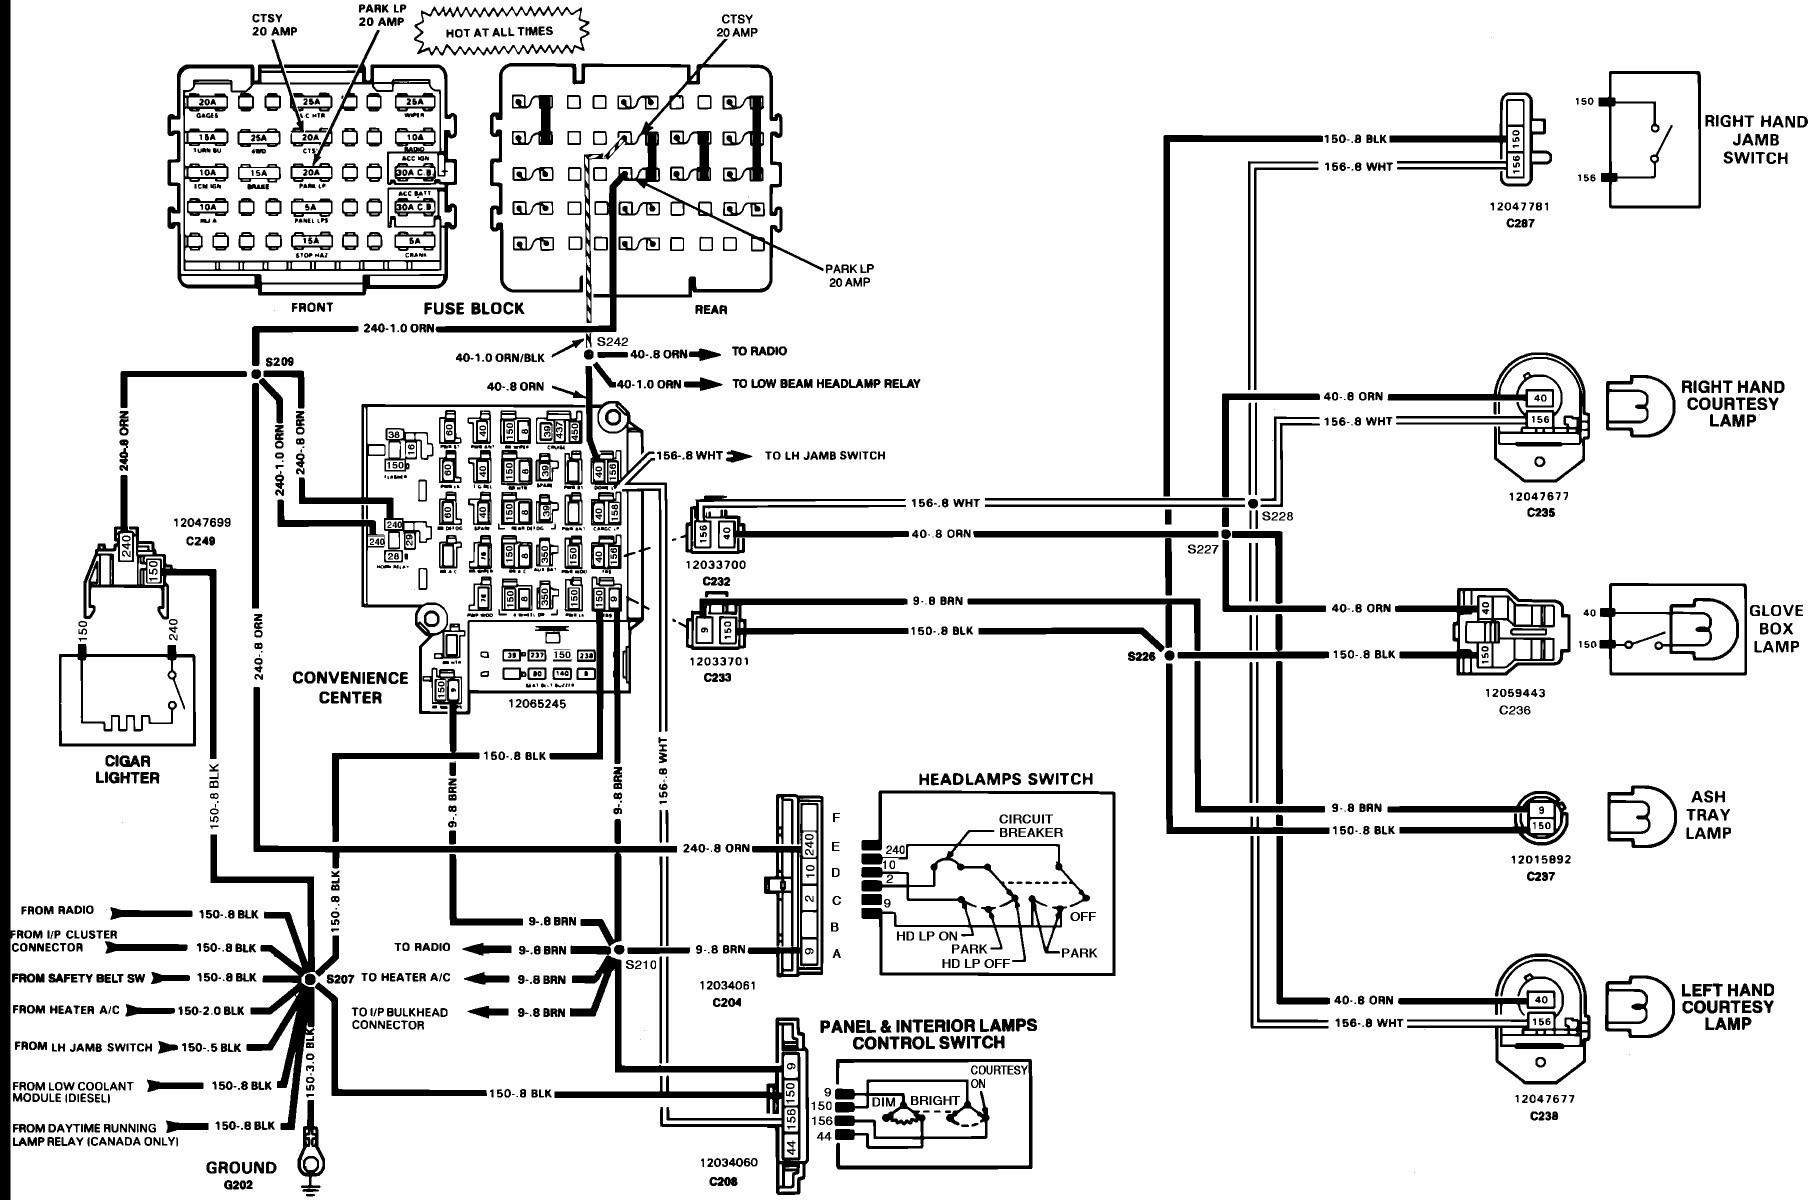 Pleasant Mopar Alternator Wiring Diagram Wiring Library Wiring Cloud Oideiuggs Outletorg